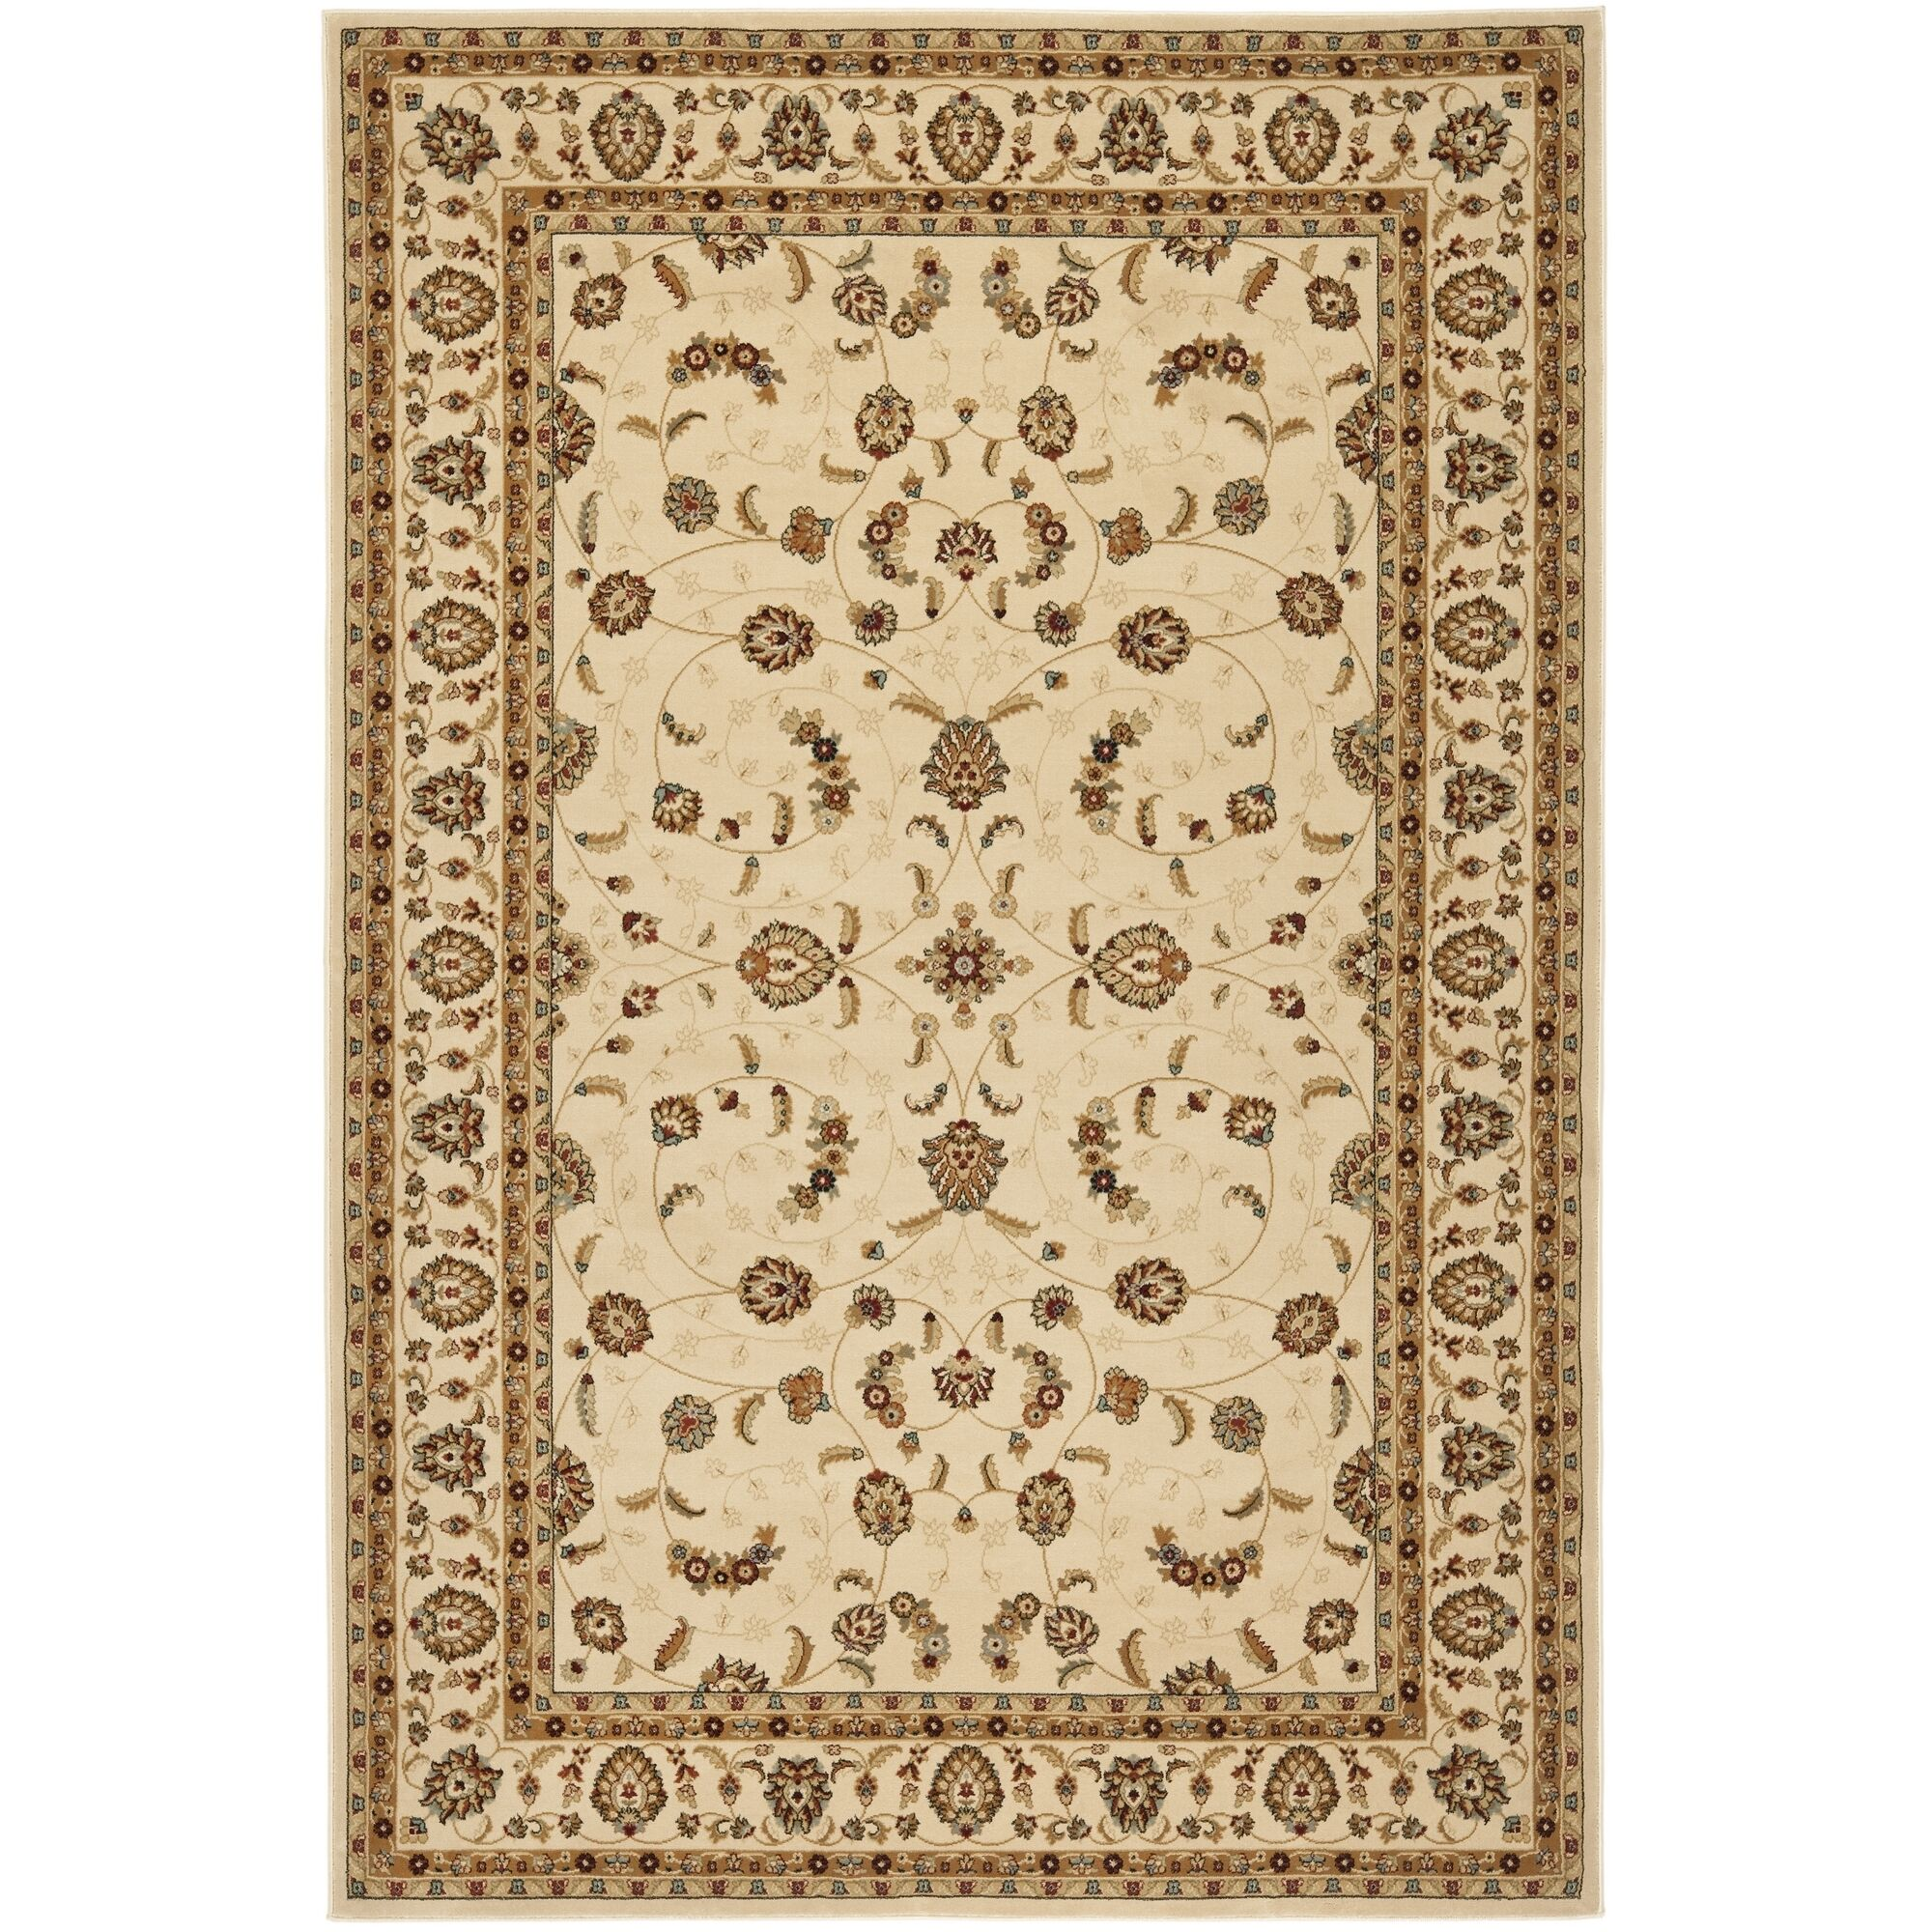 Majesty Creme Area Rug Rug Size: Rectangle 5'3